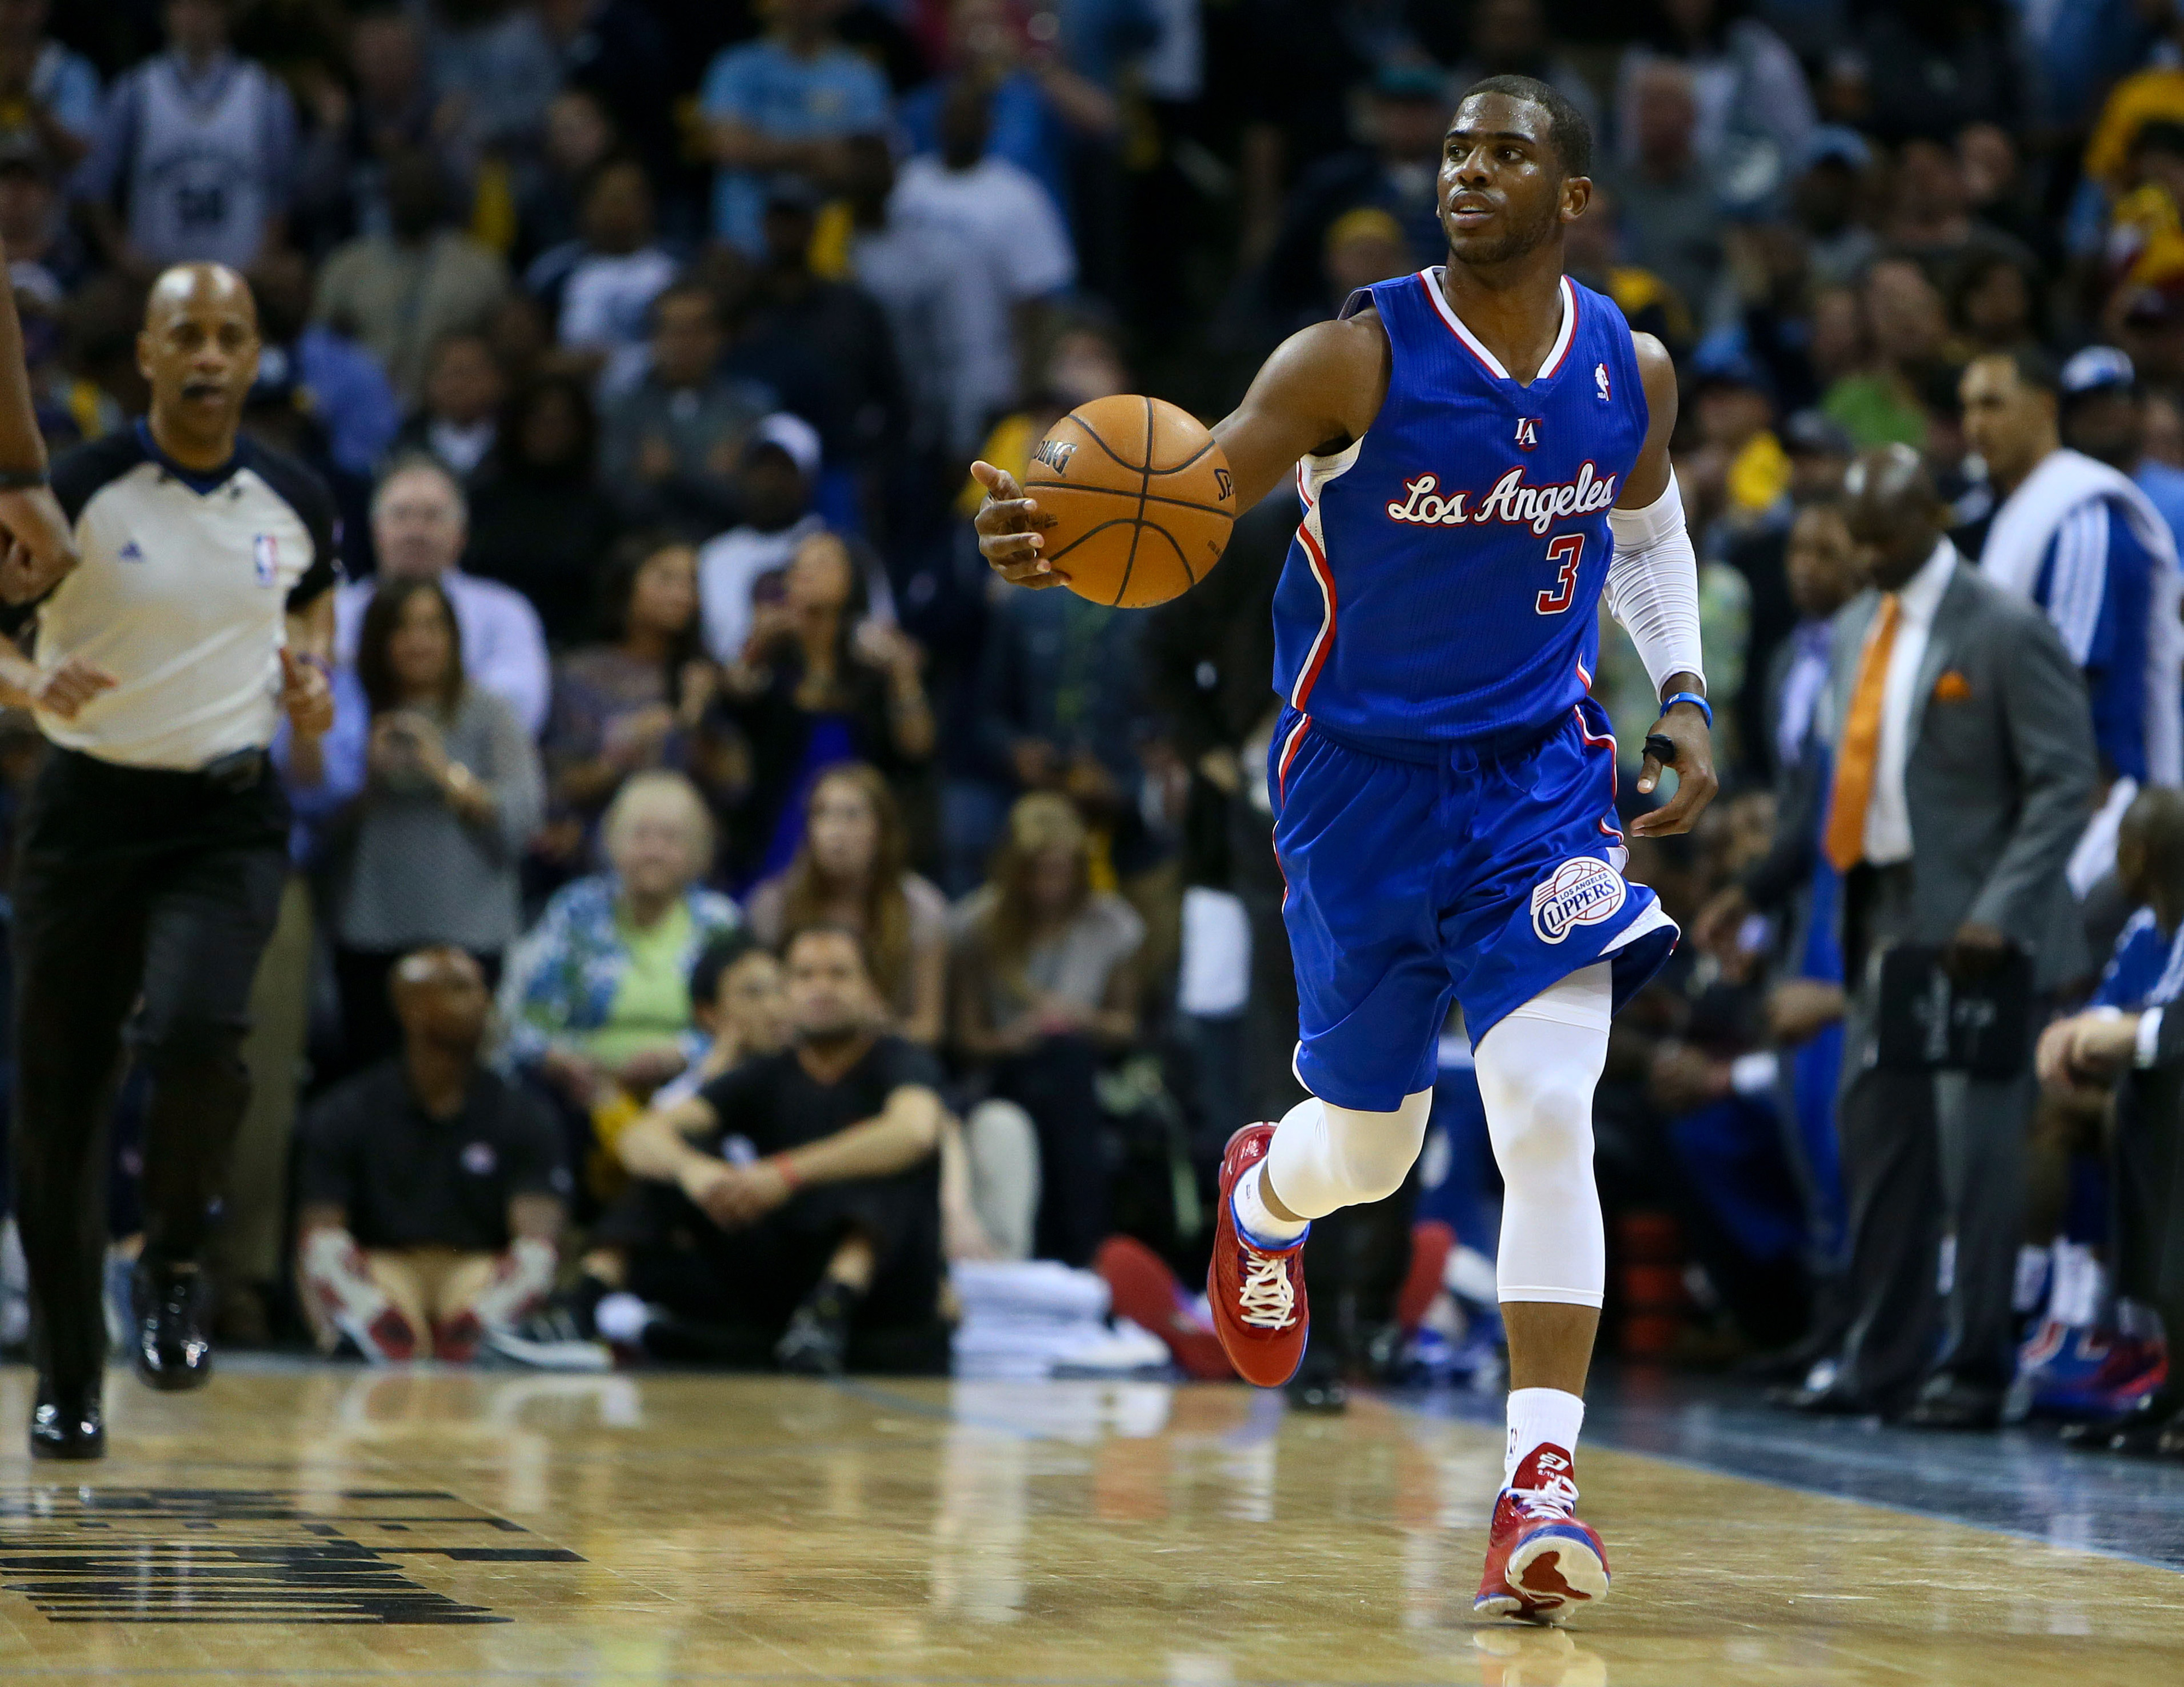 Chris Paul wants Doc Rivers, Kevin Garnett trade to Clippers to go through, per report